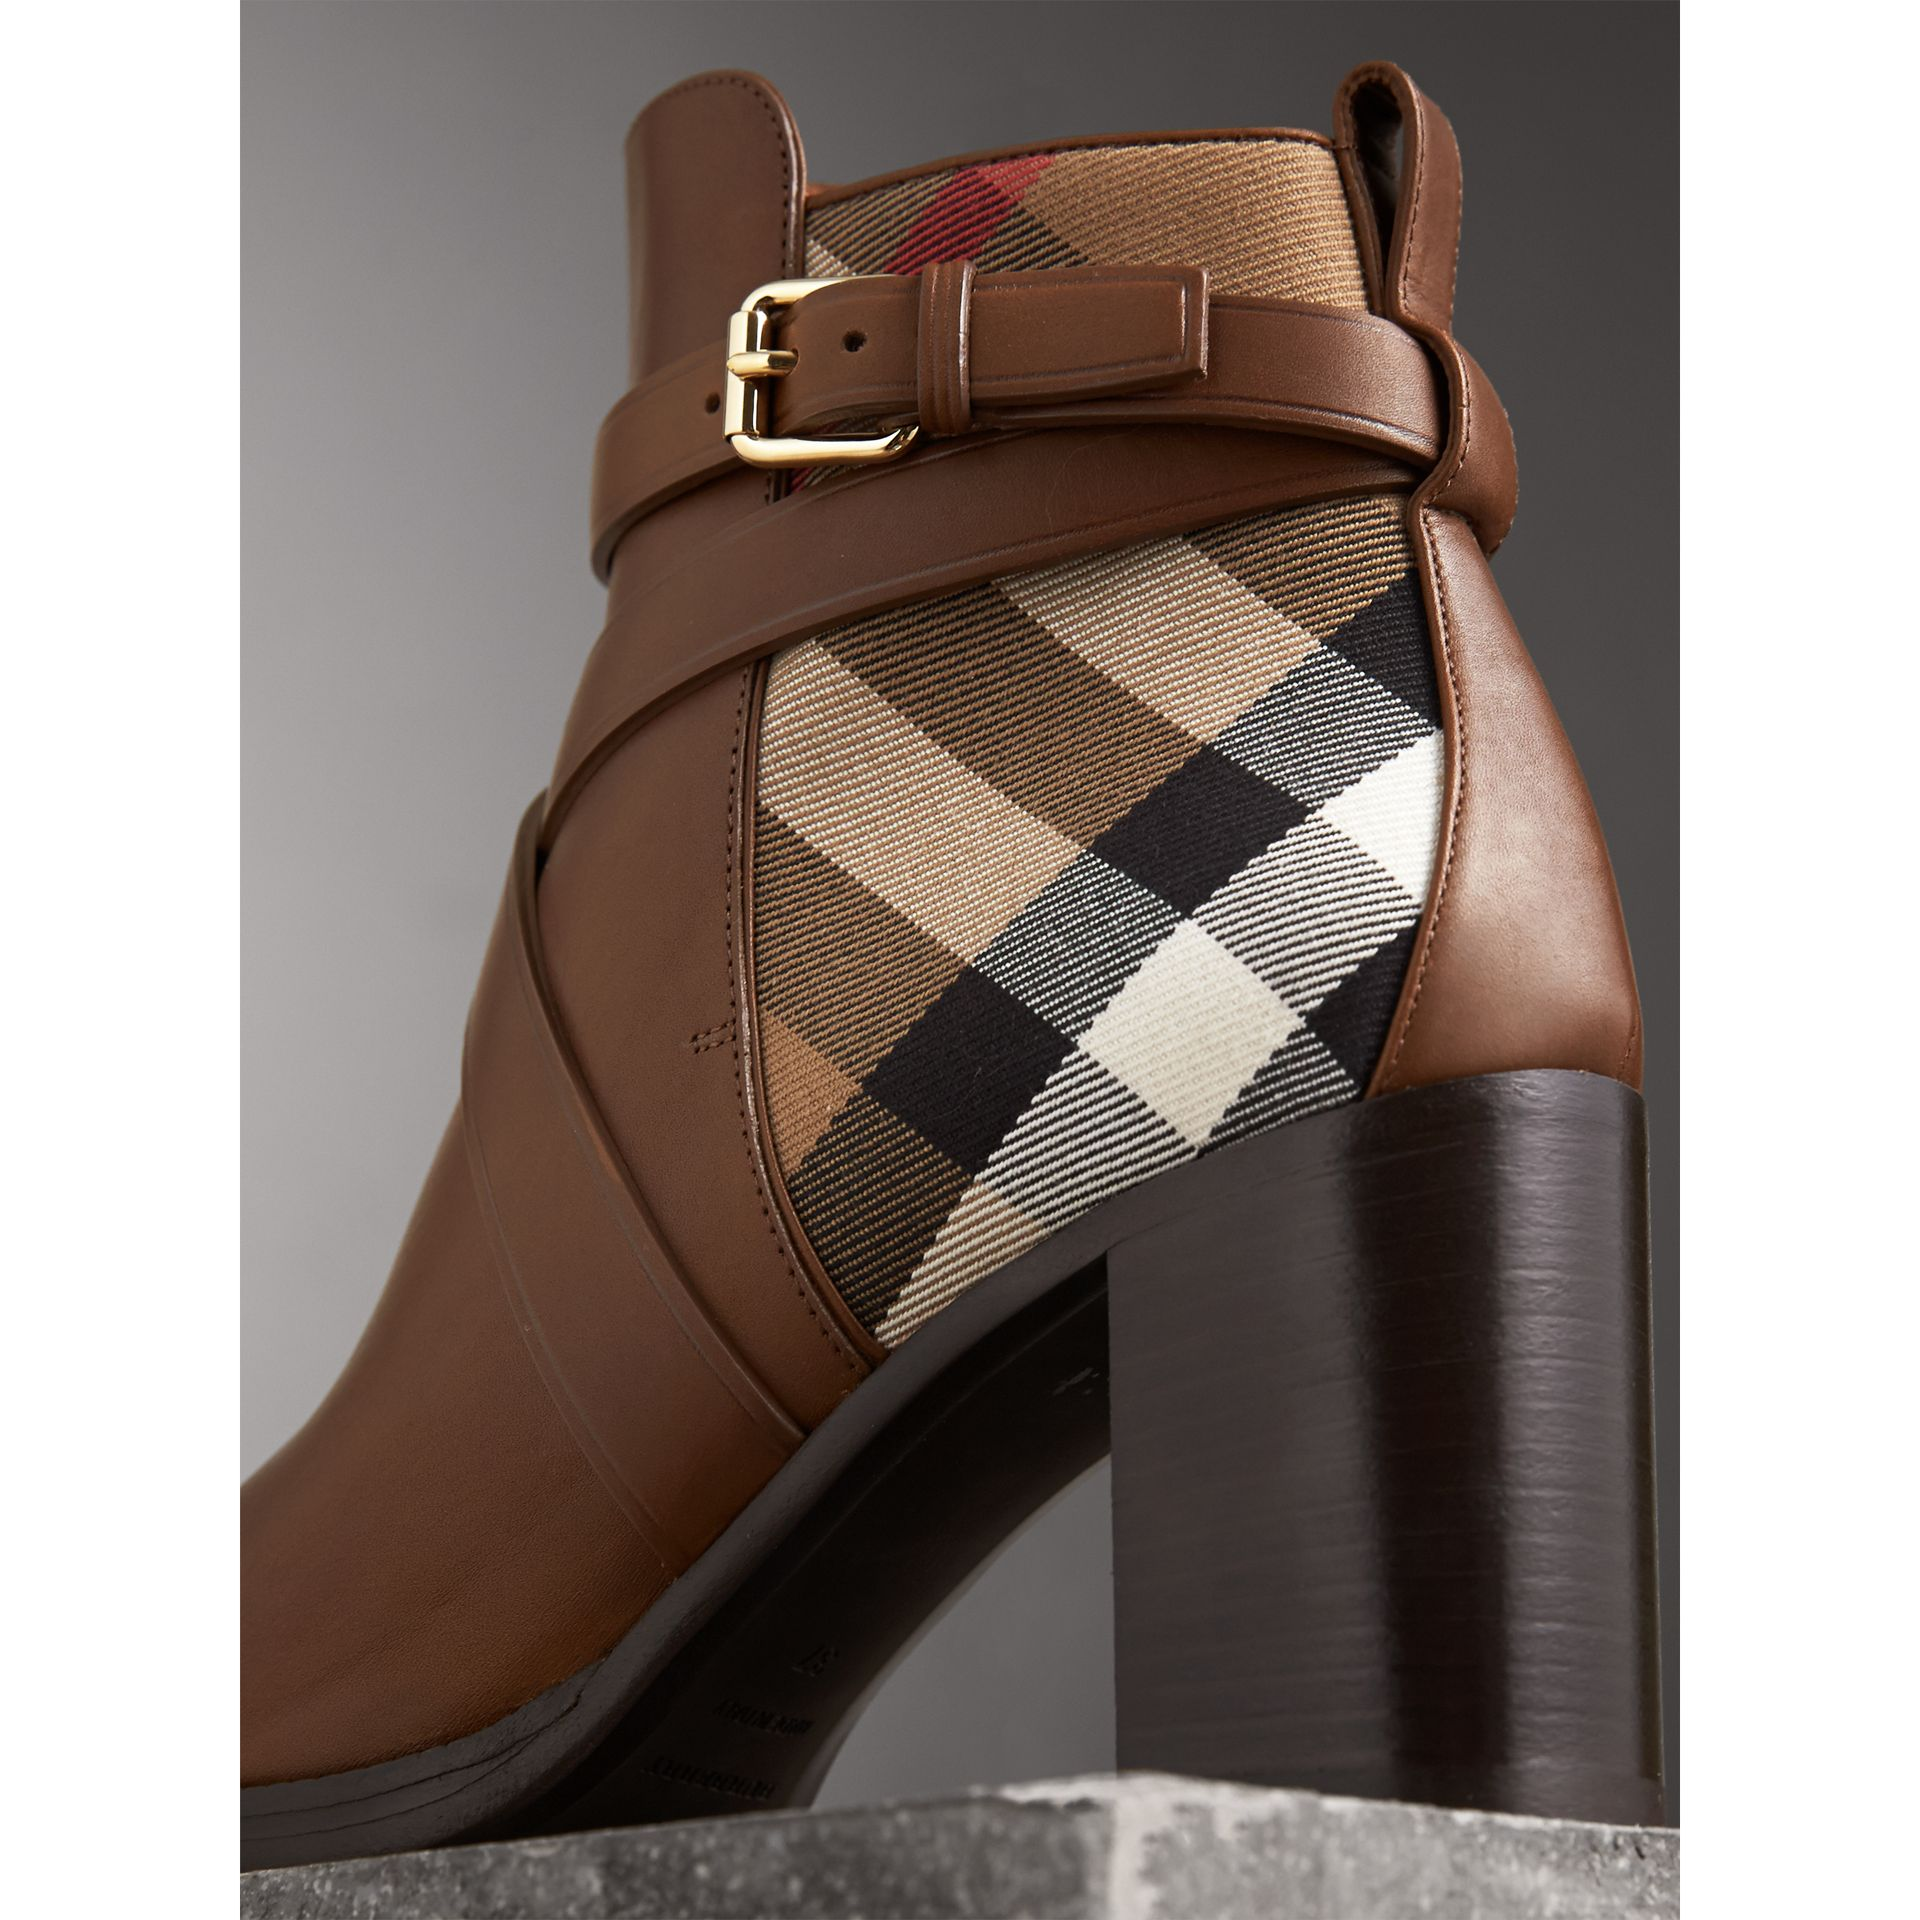 Bottines en cuir et coton House check (Camel Vif) - Femme | Burberry Canada - photo de la galerie 1